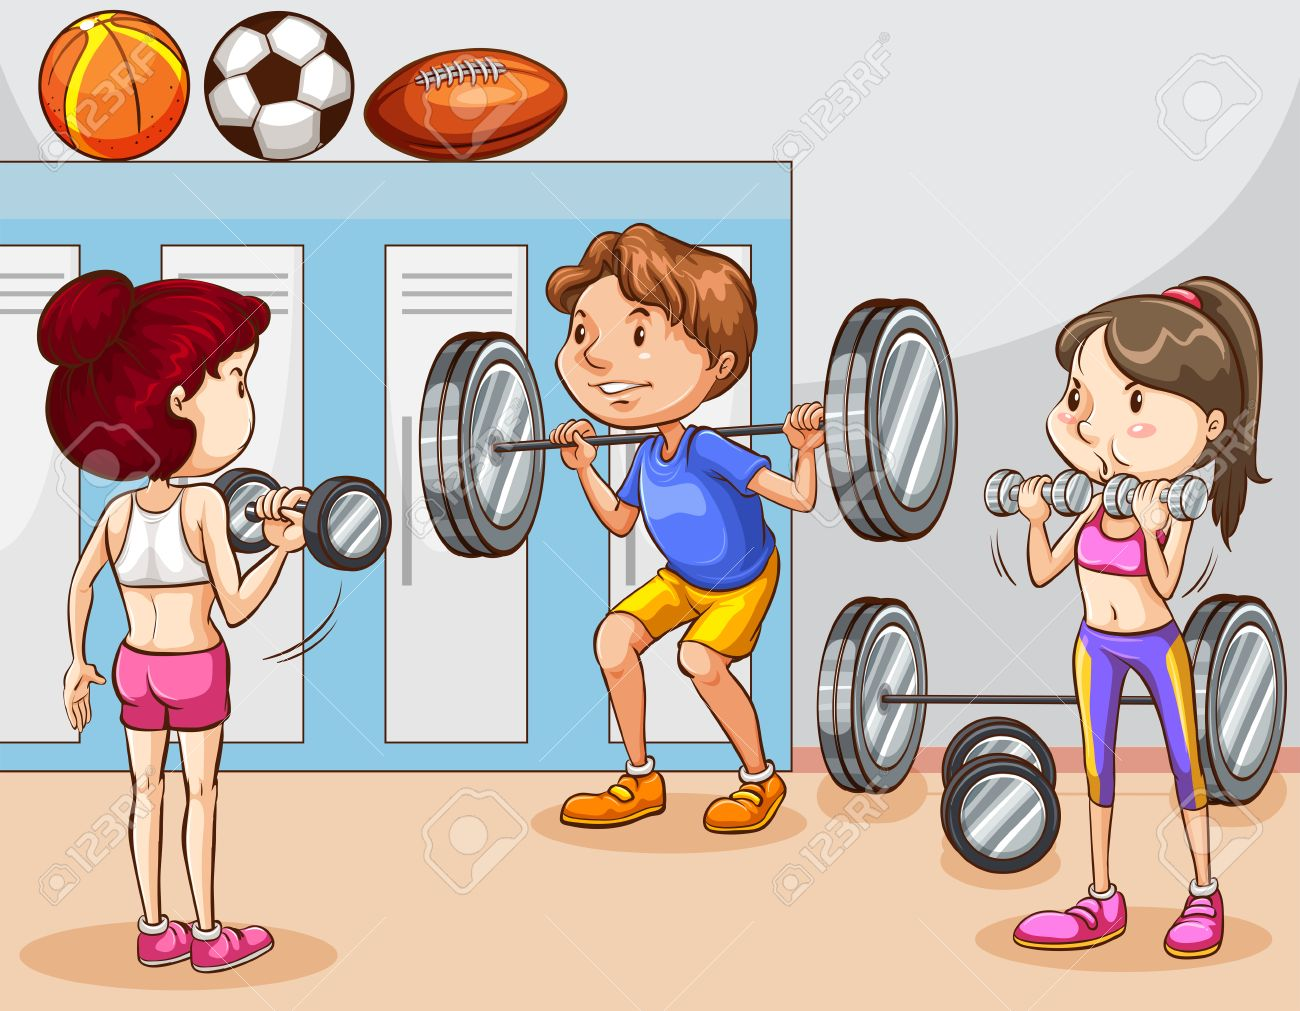 People working out in gym illustration.